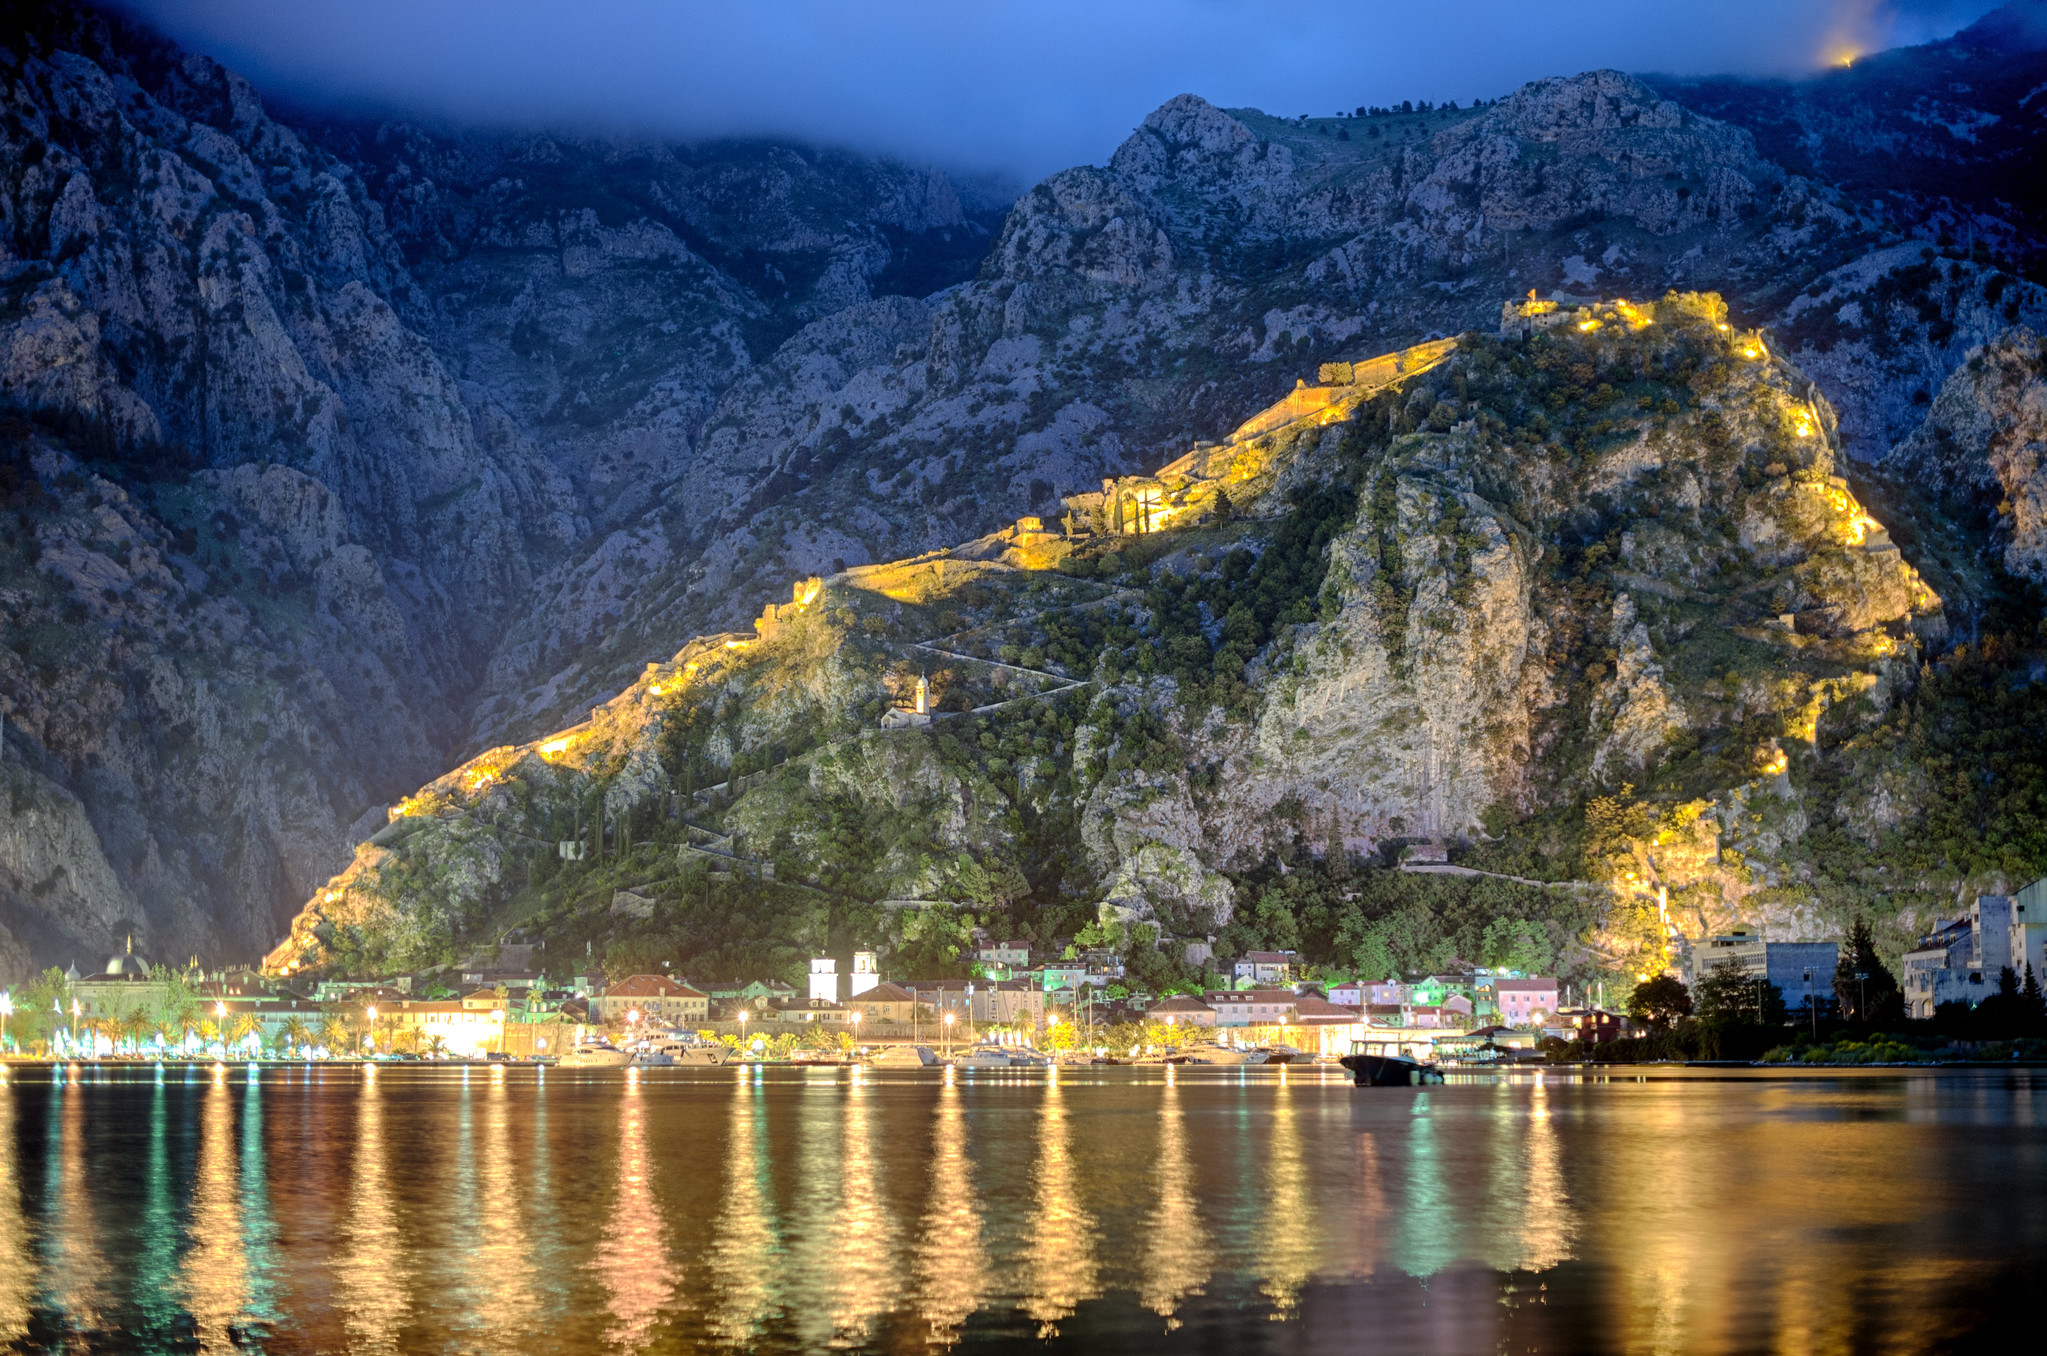 Evening in Kotor